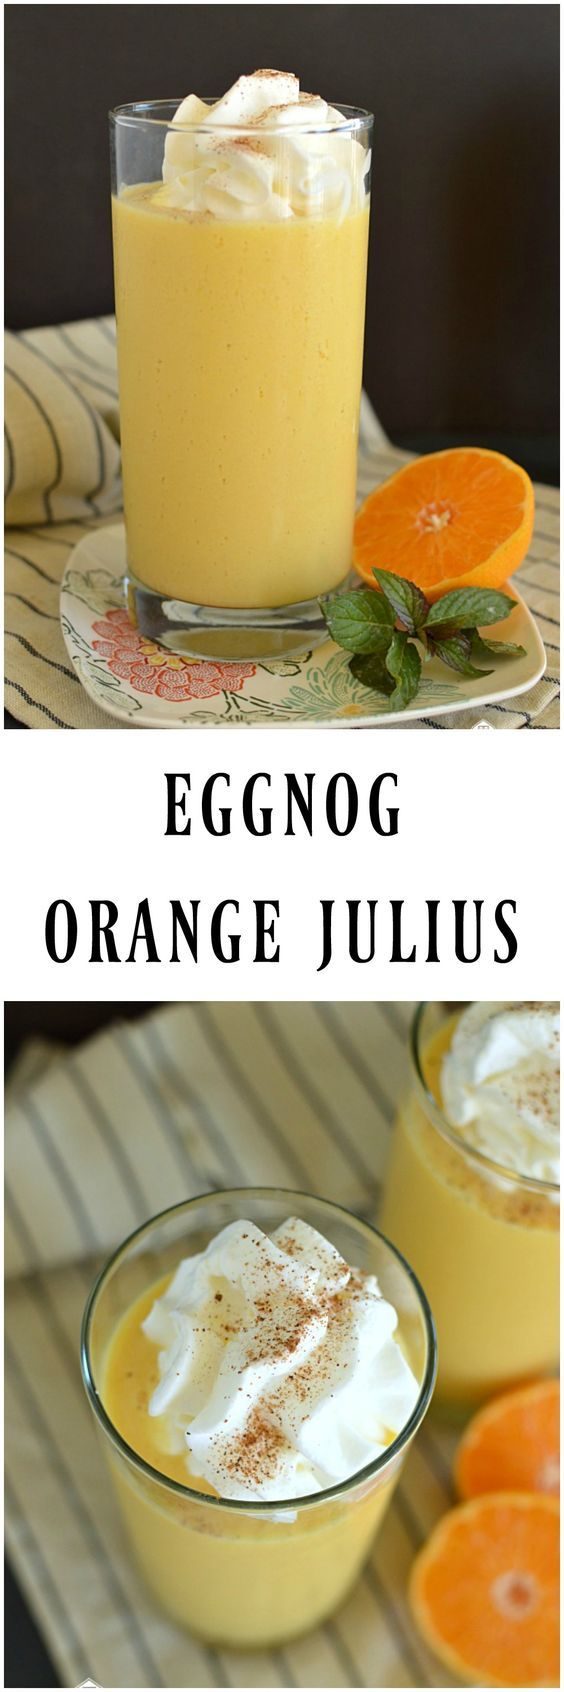 Eggnog Orange Julius is a fun new holiday twist on an old classic! It only takes a few minutes and a few ingredients and you will be enjoying this creamy drink!